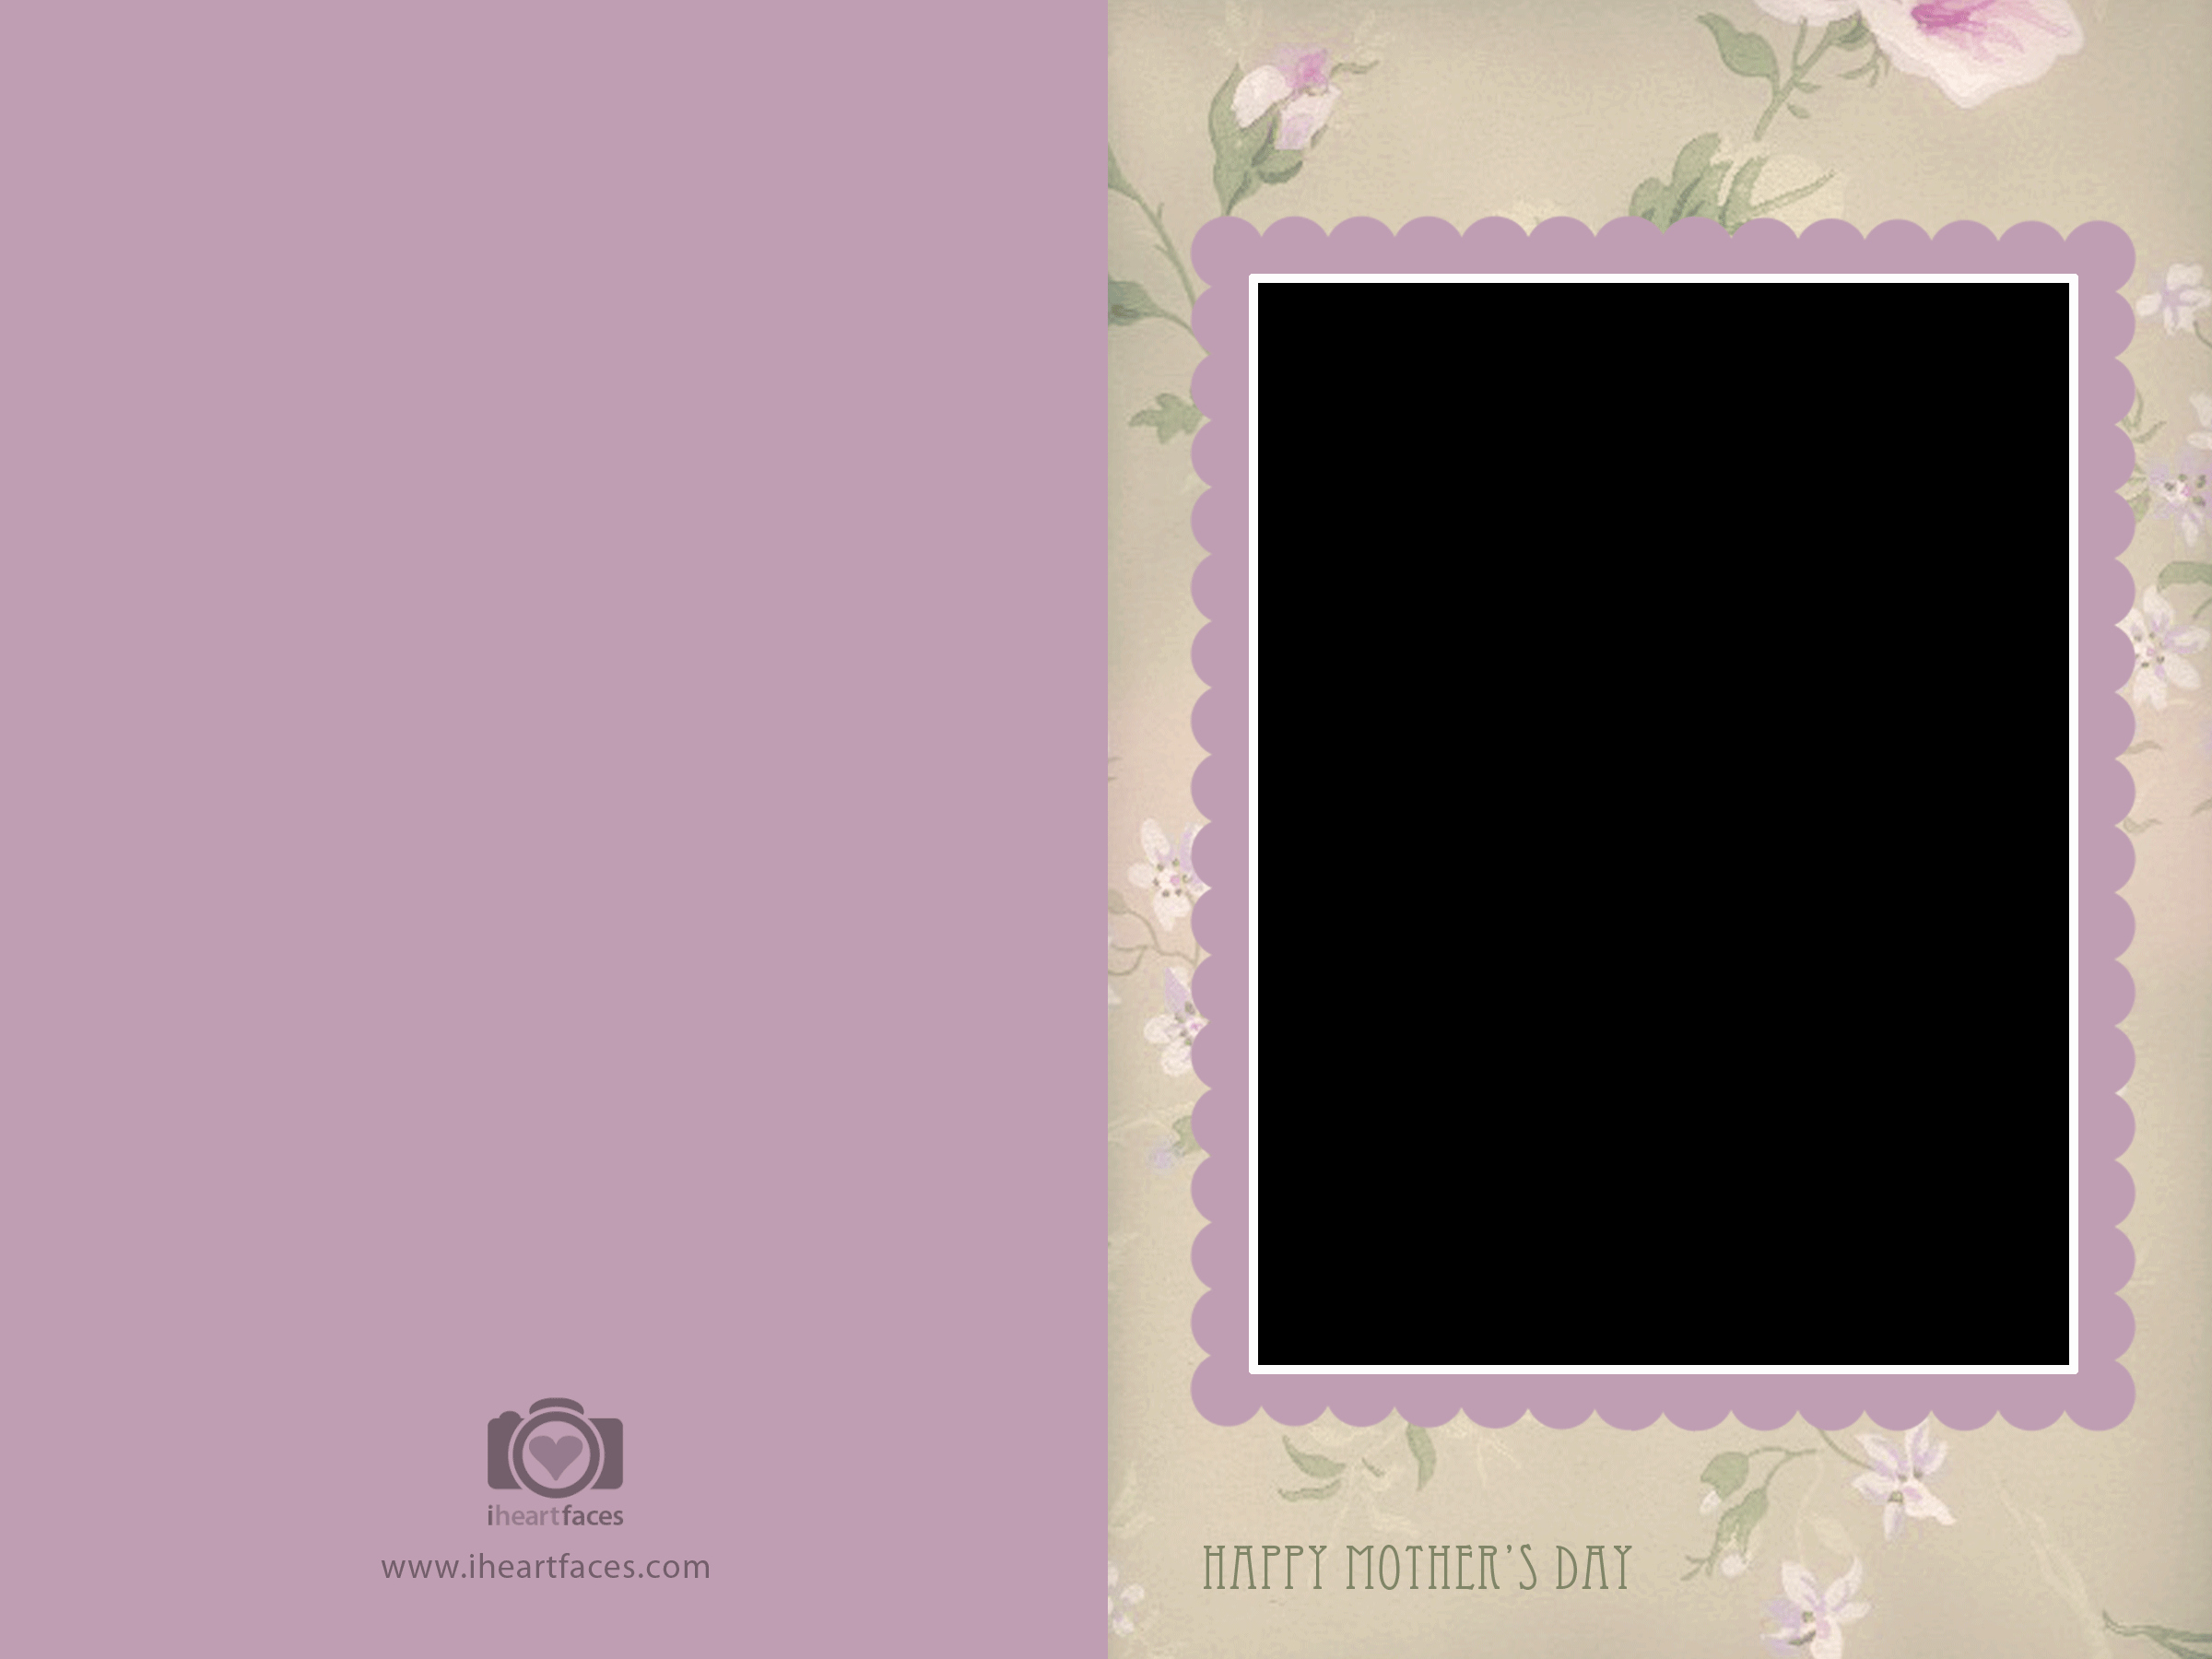 Templates for Cards Free Downloads Best Of 12 Shop Card Templates Free Free Wedding